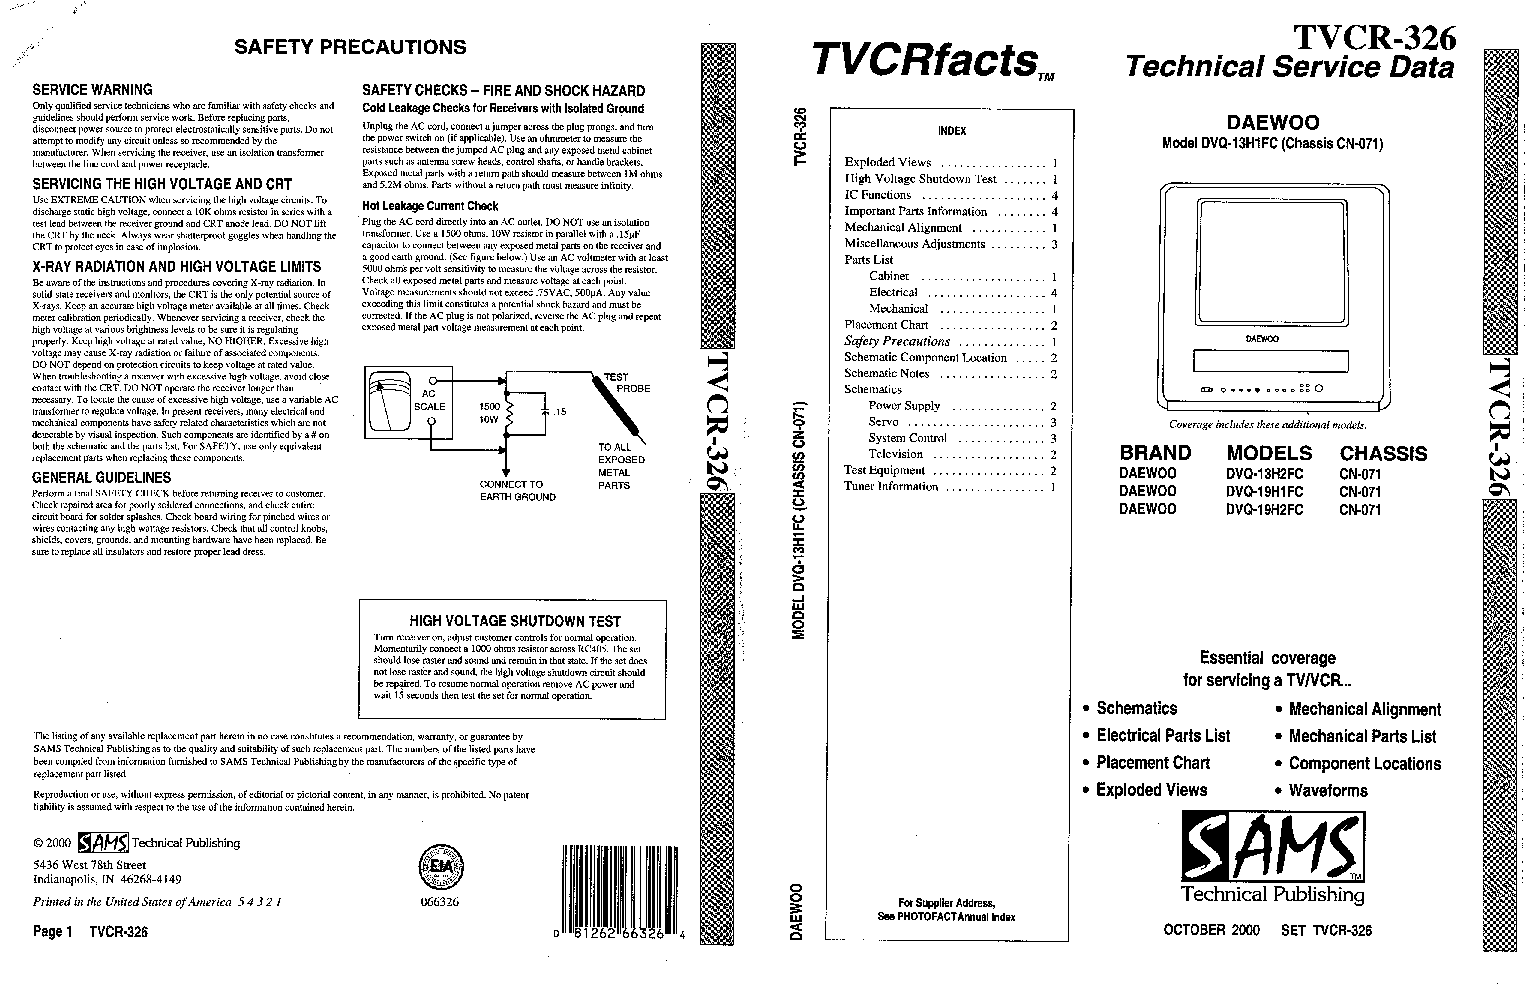 DAEWOO CTF2162 Service Manual download, schematics, eeprom